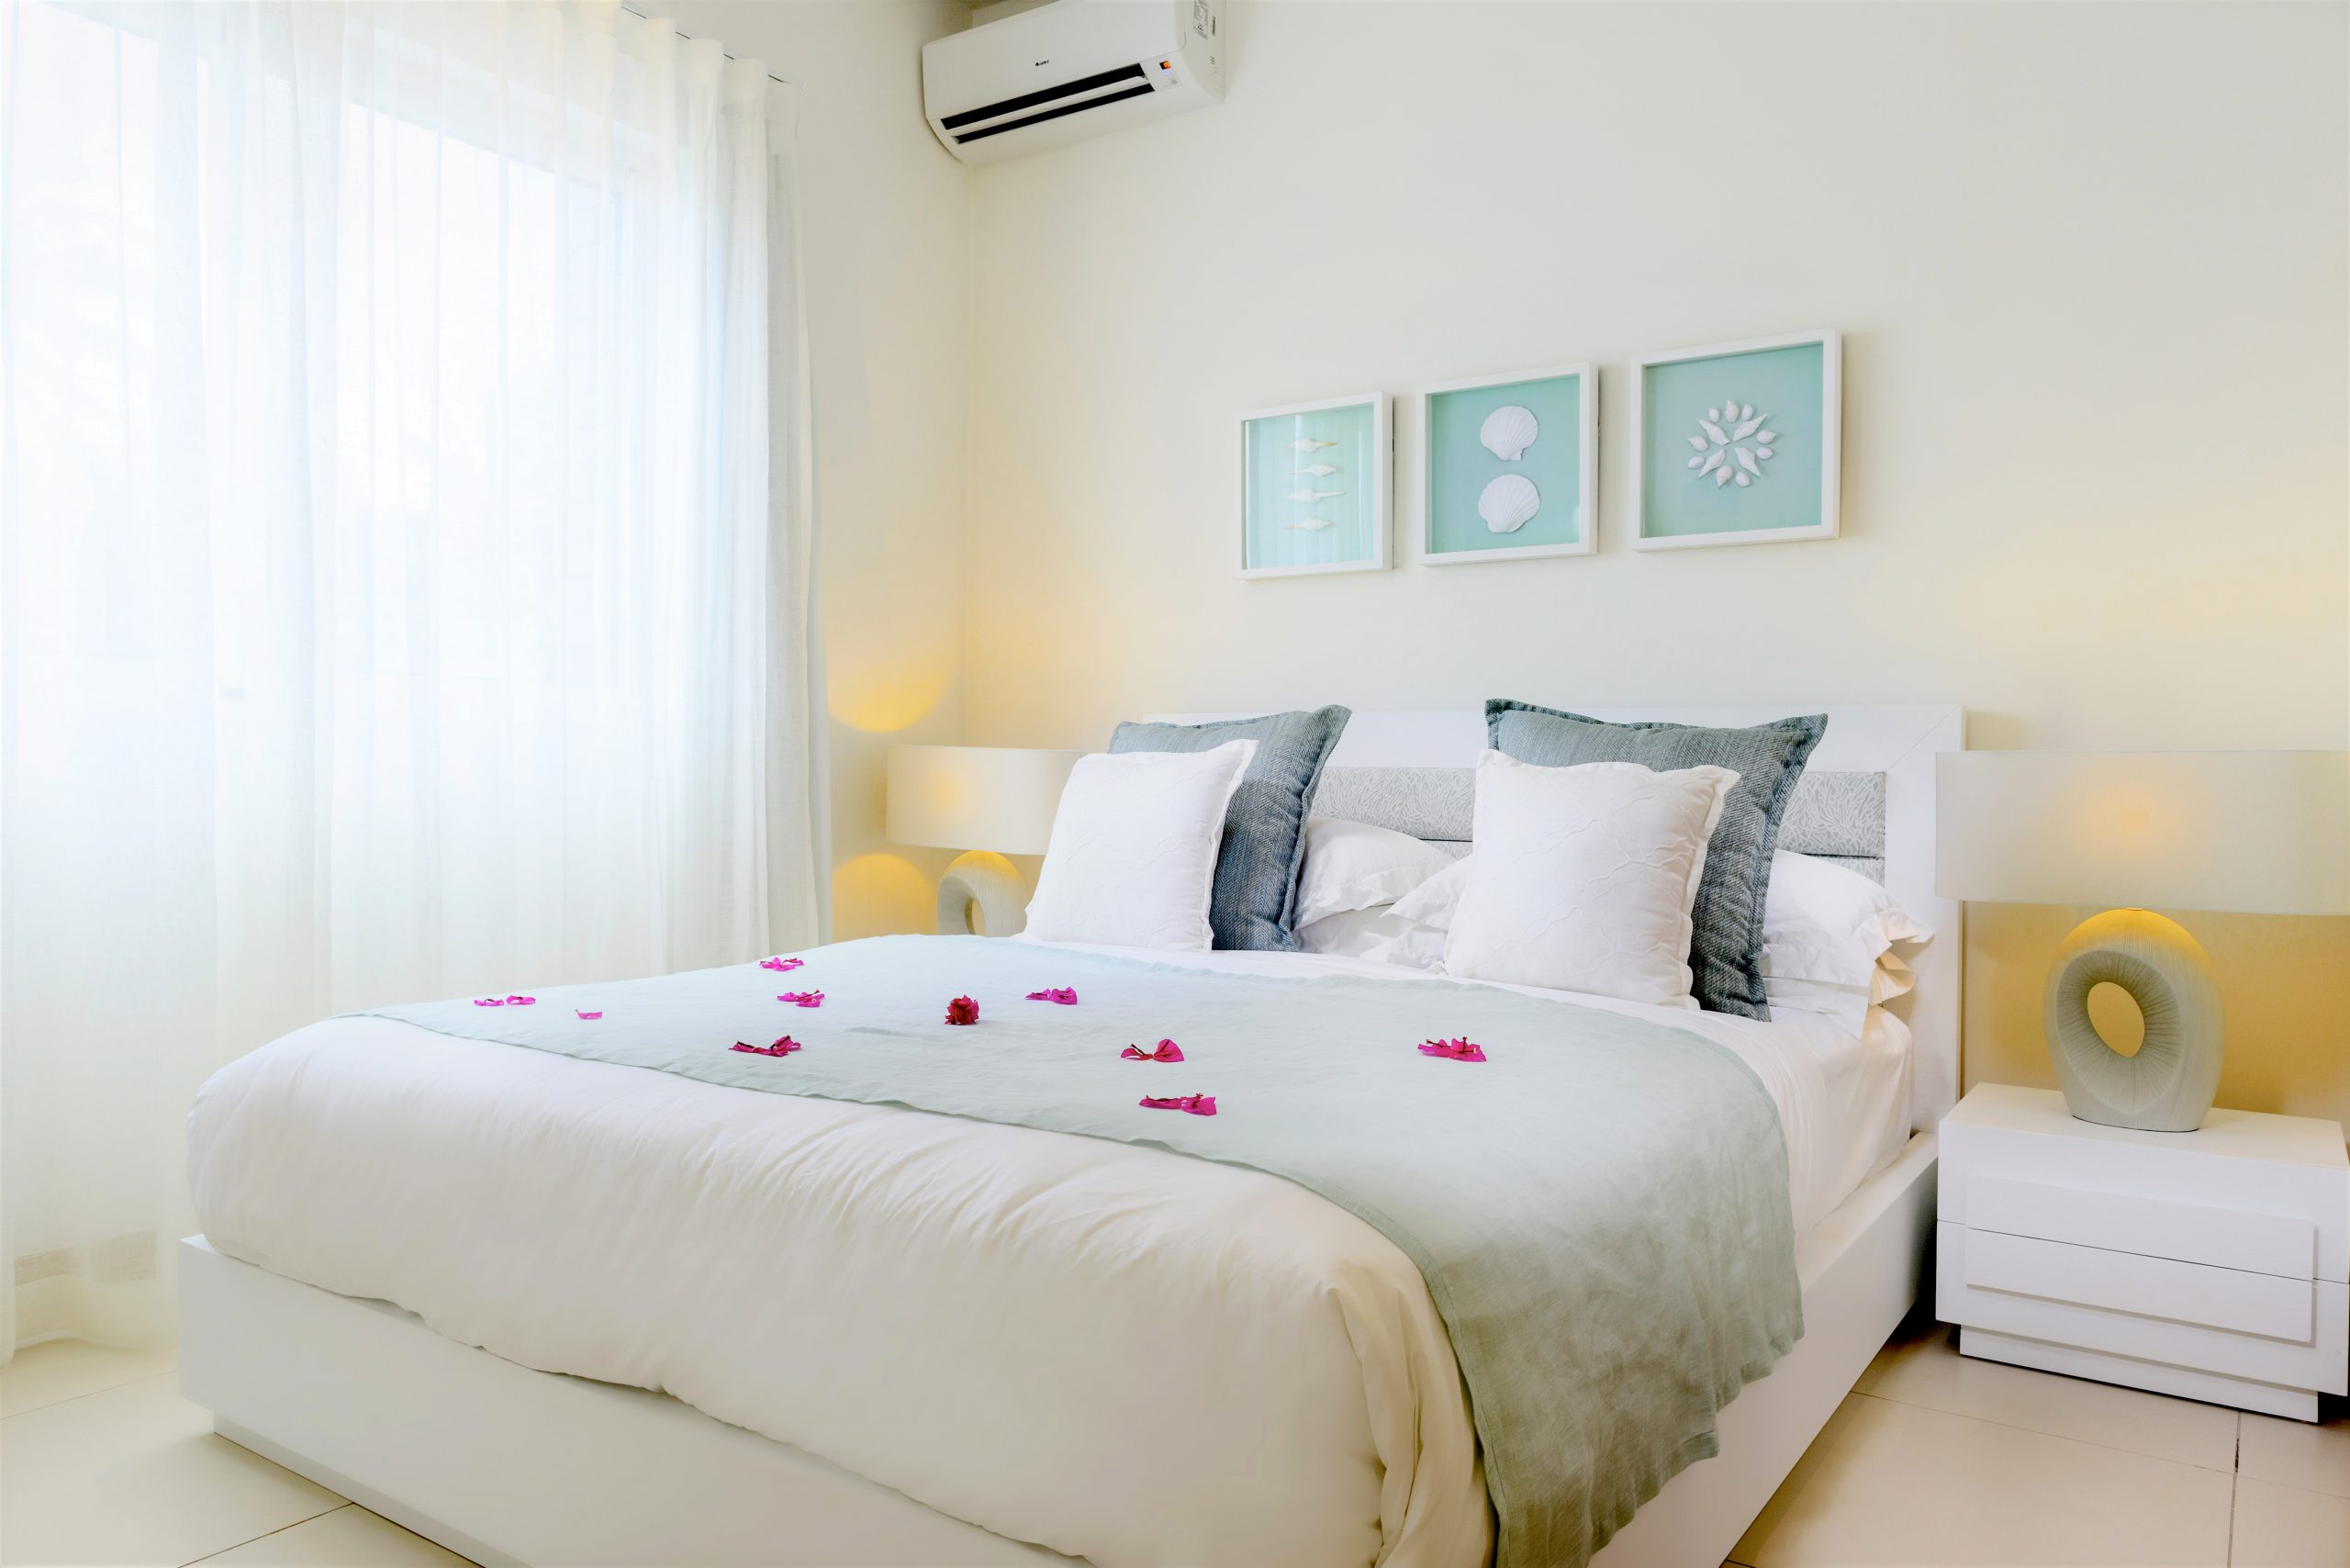 Myra-Seafront-Suites-Penthouses-SUITE-Bedroom-4-scaled.jpg